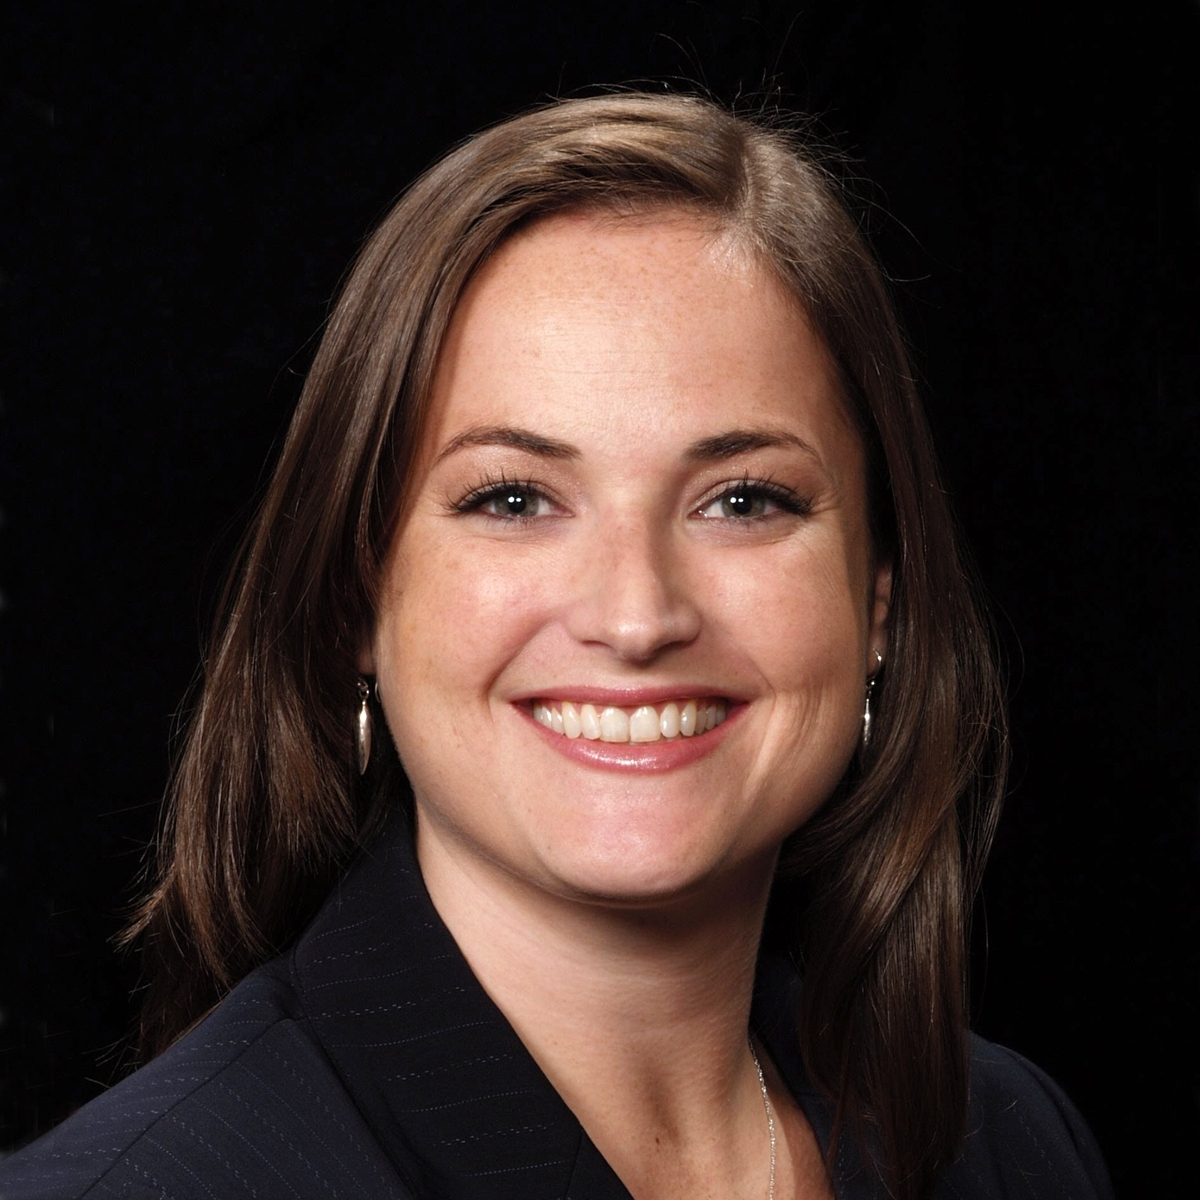 Alison E  Canning | Baltimore, MD | Morgan Stanley Wealth